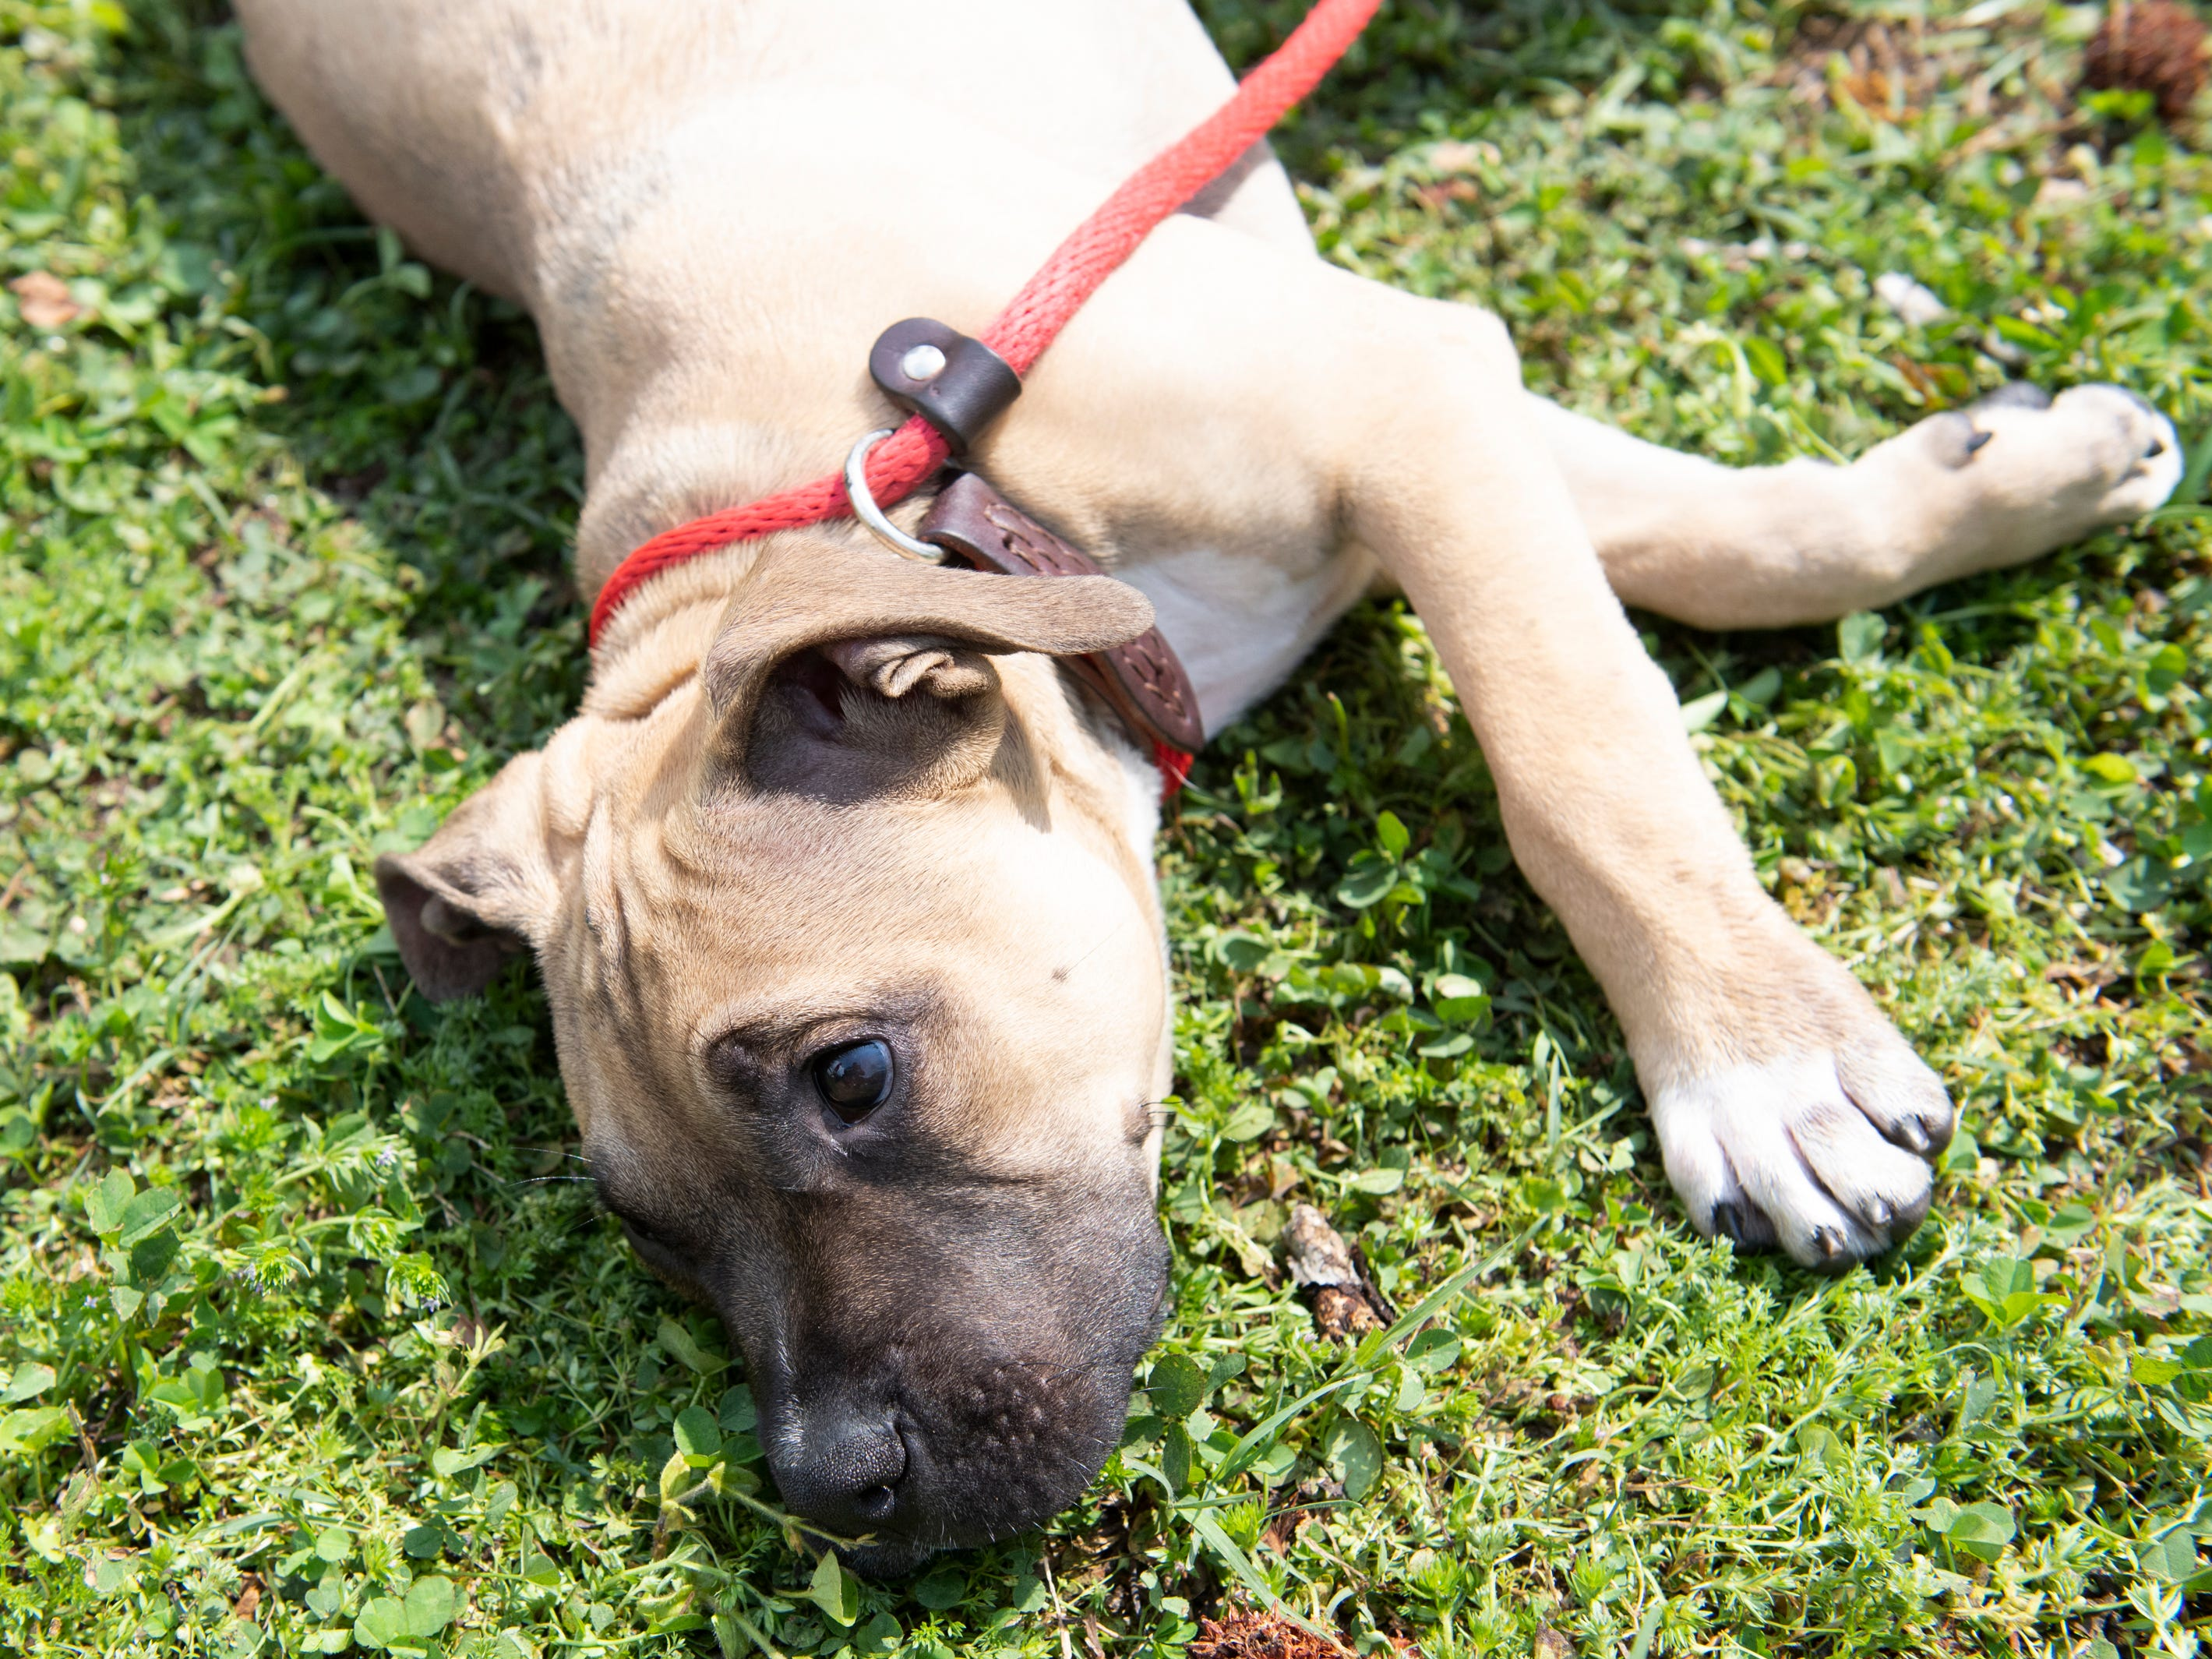 Louis rests during Paws for a Cause at Simpsonville City Park Saturday, April 13, 2019. Louis was one of the dogs up for adoption from Concerned Citizens for Animals (CCA). Louis found a home during the event, which was a fundraiser for CCA.